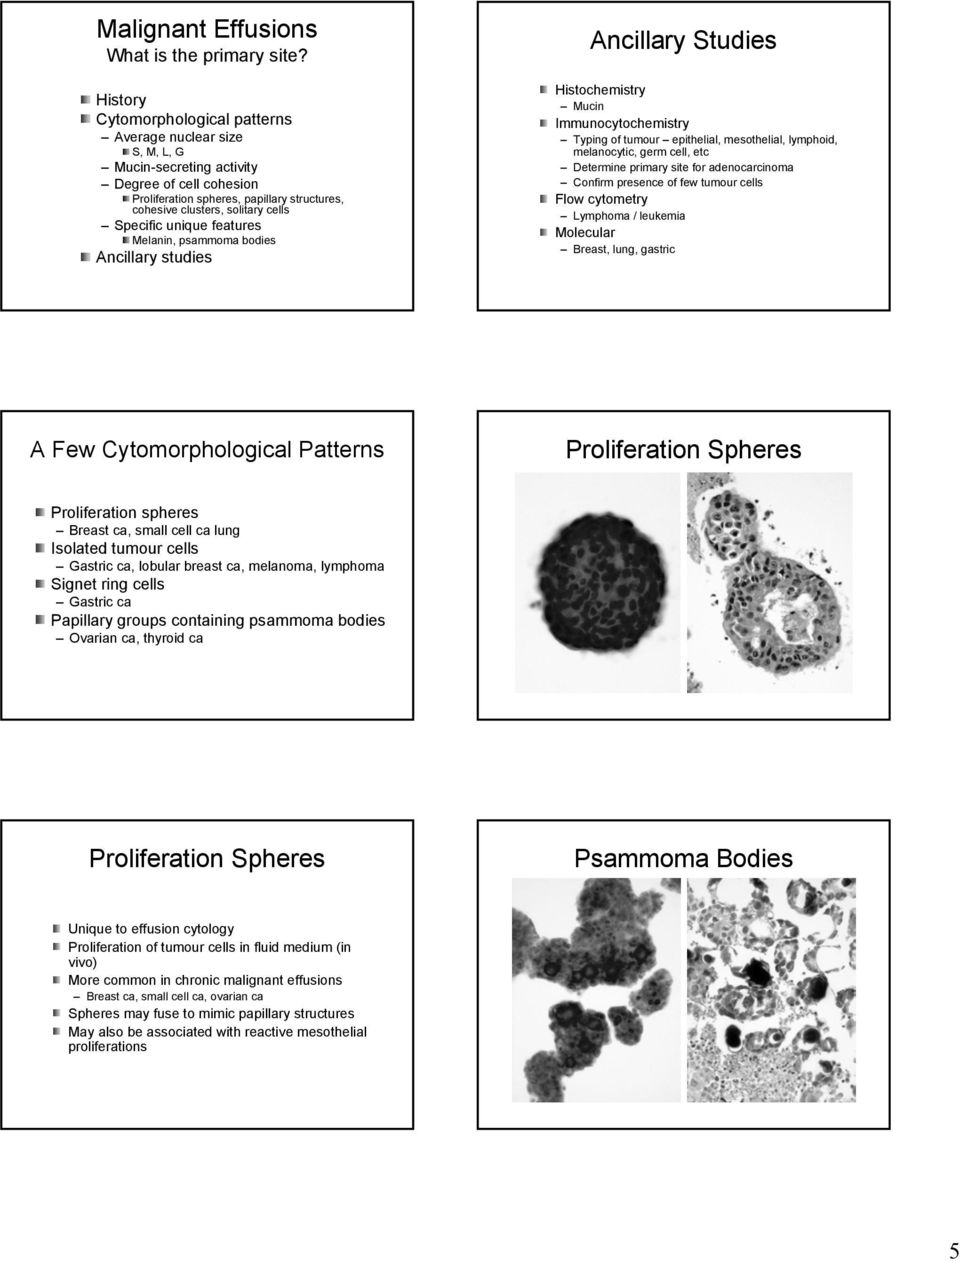 Specific unique features Melanin, psammoma bodies Ancillary studies Ancillary Studies Histochemistry Mucin Immunocytochemistry Typing of tumour epithelial, mesothelial, lymphoid, melanocytic, germ